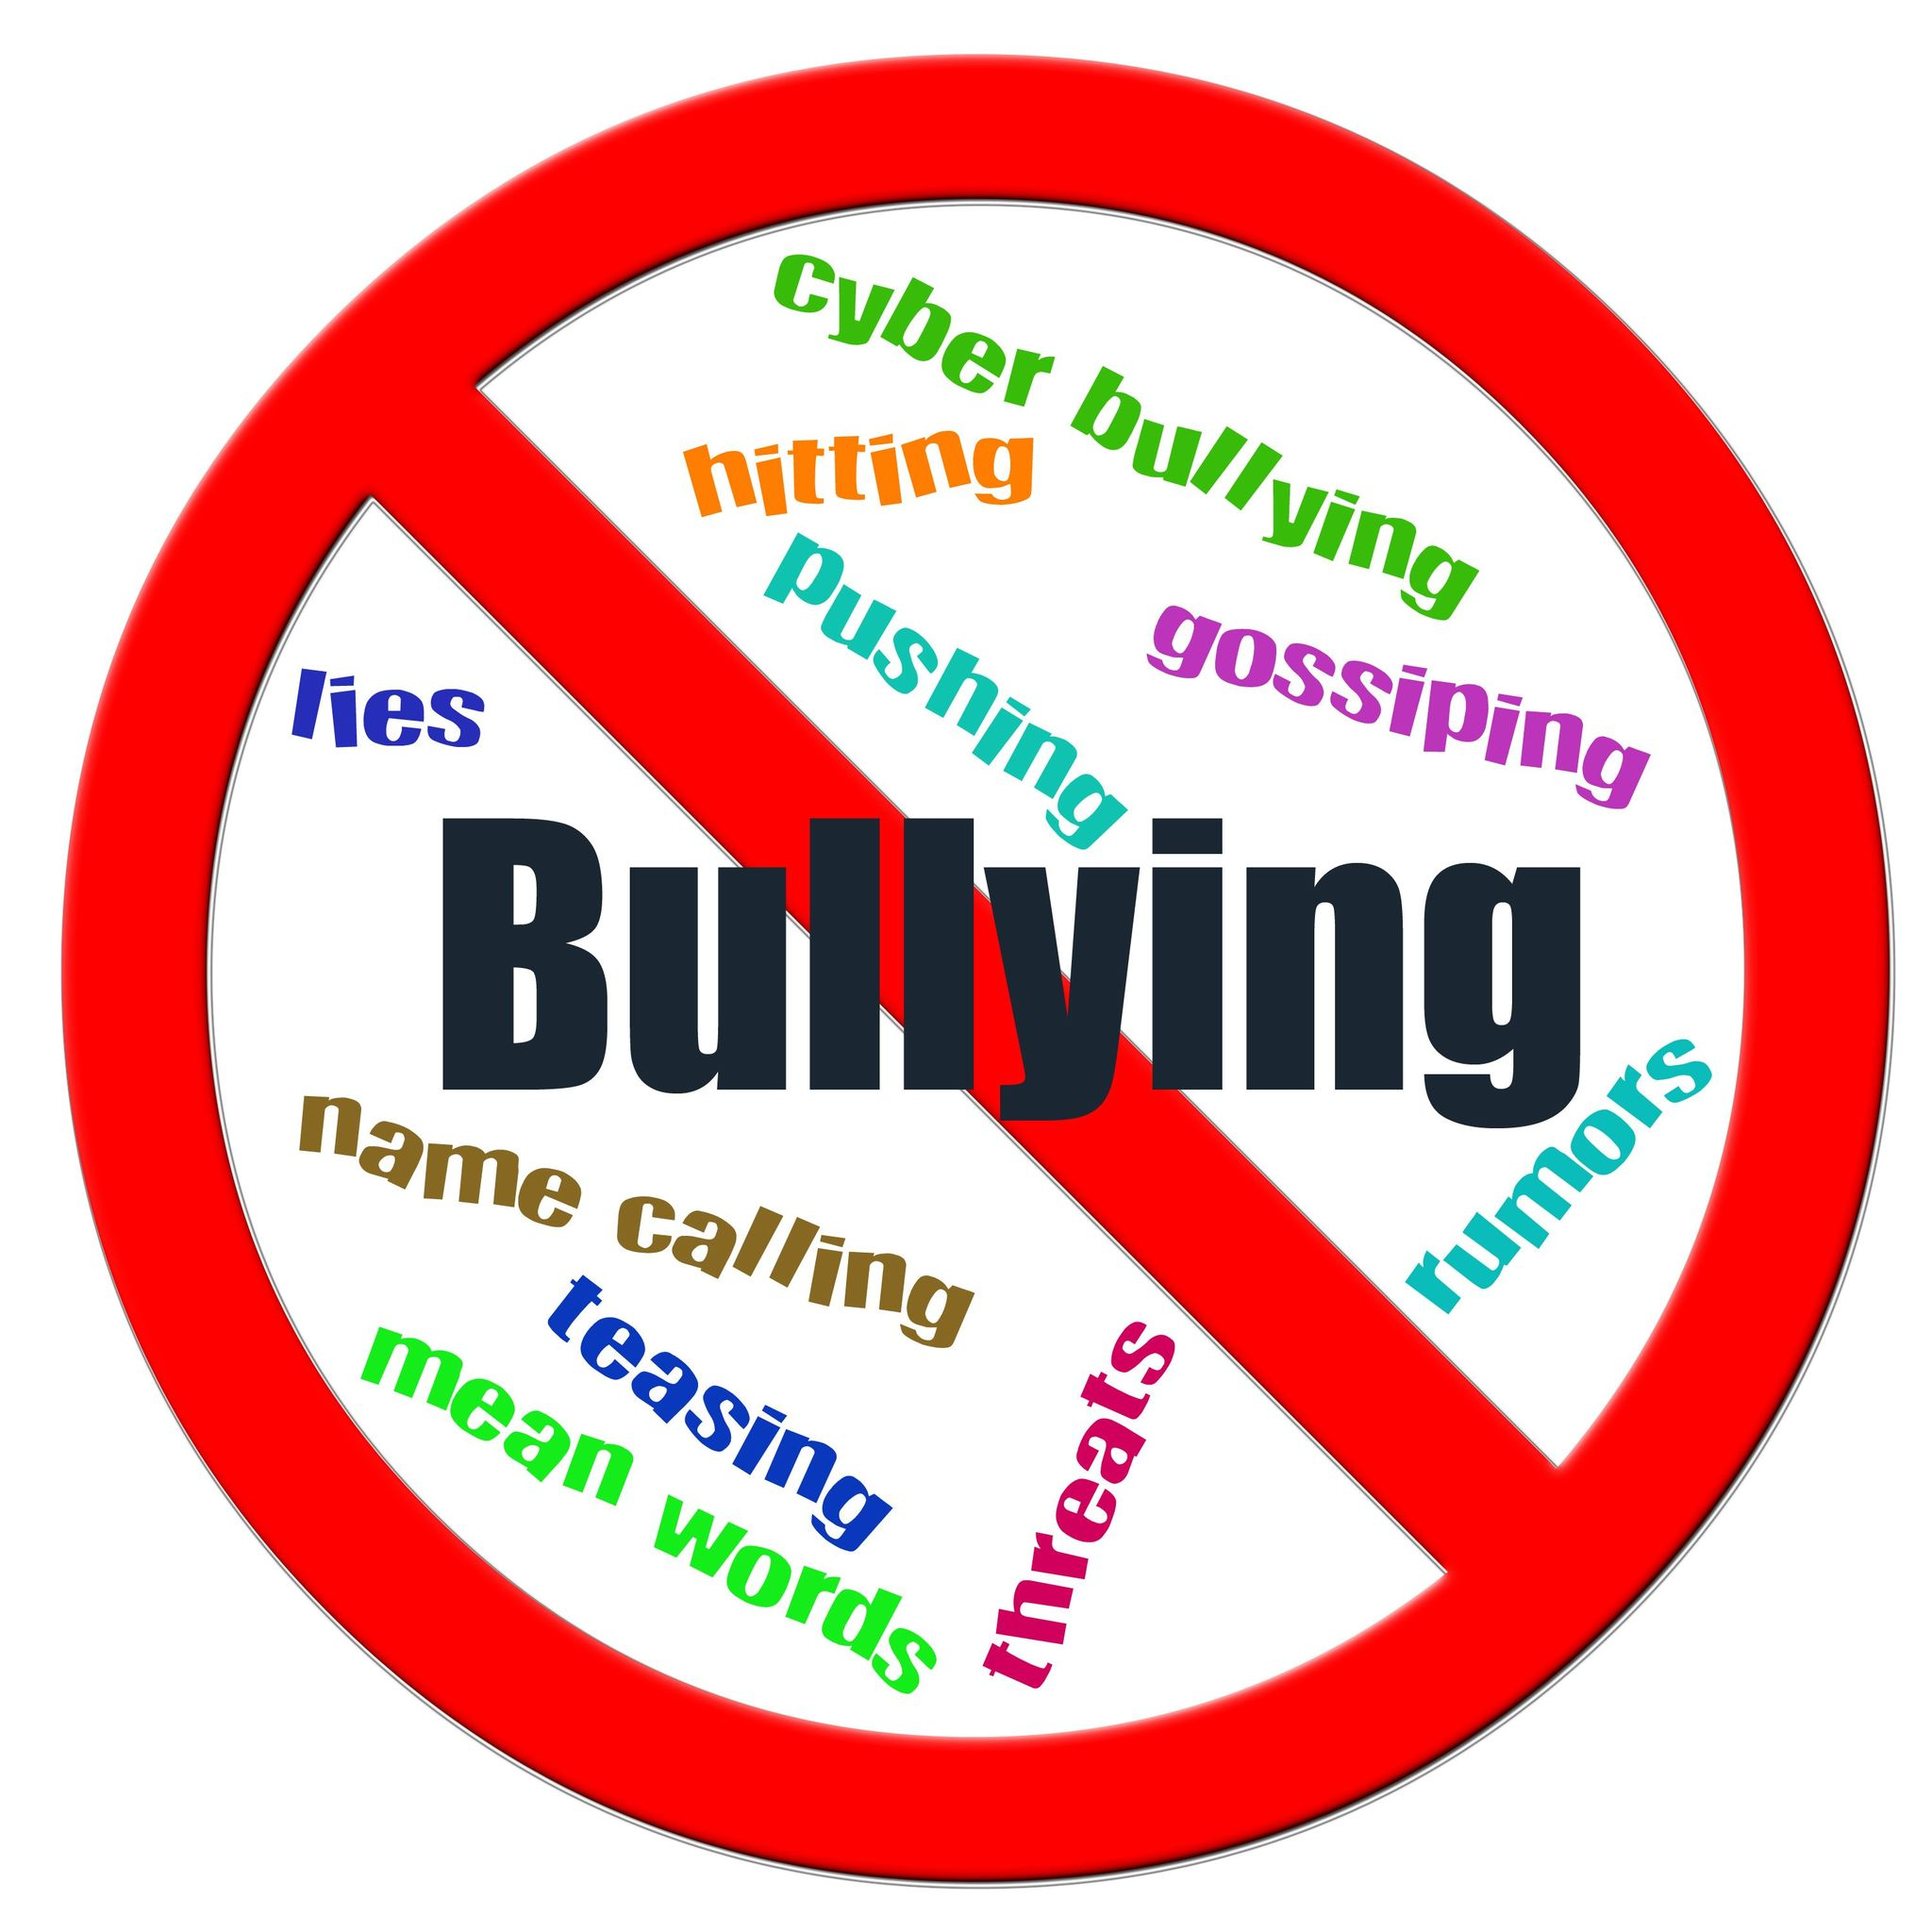 Image result for bullying image